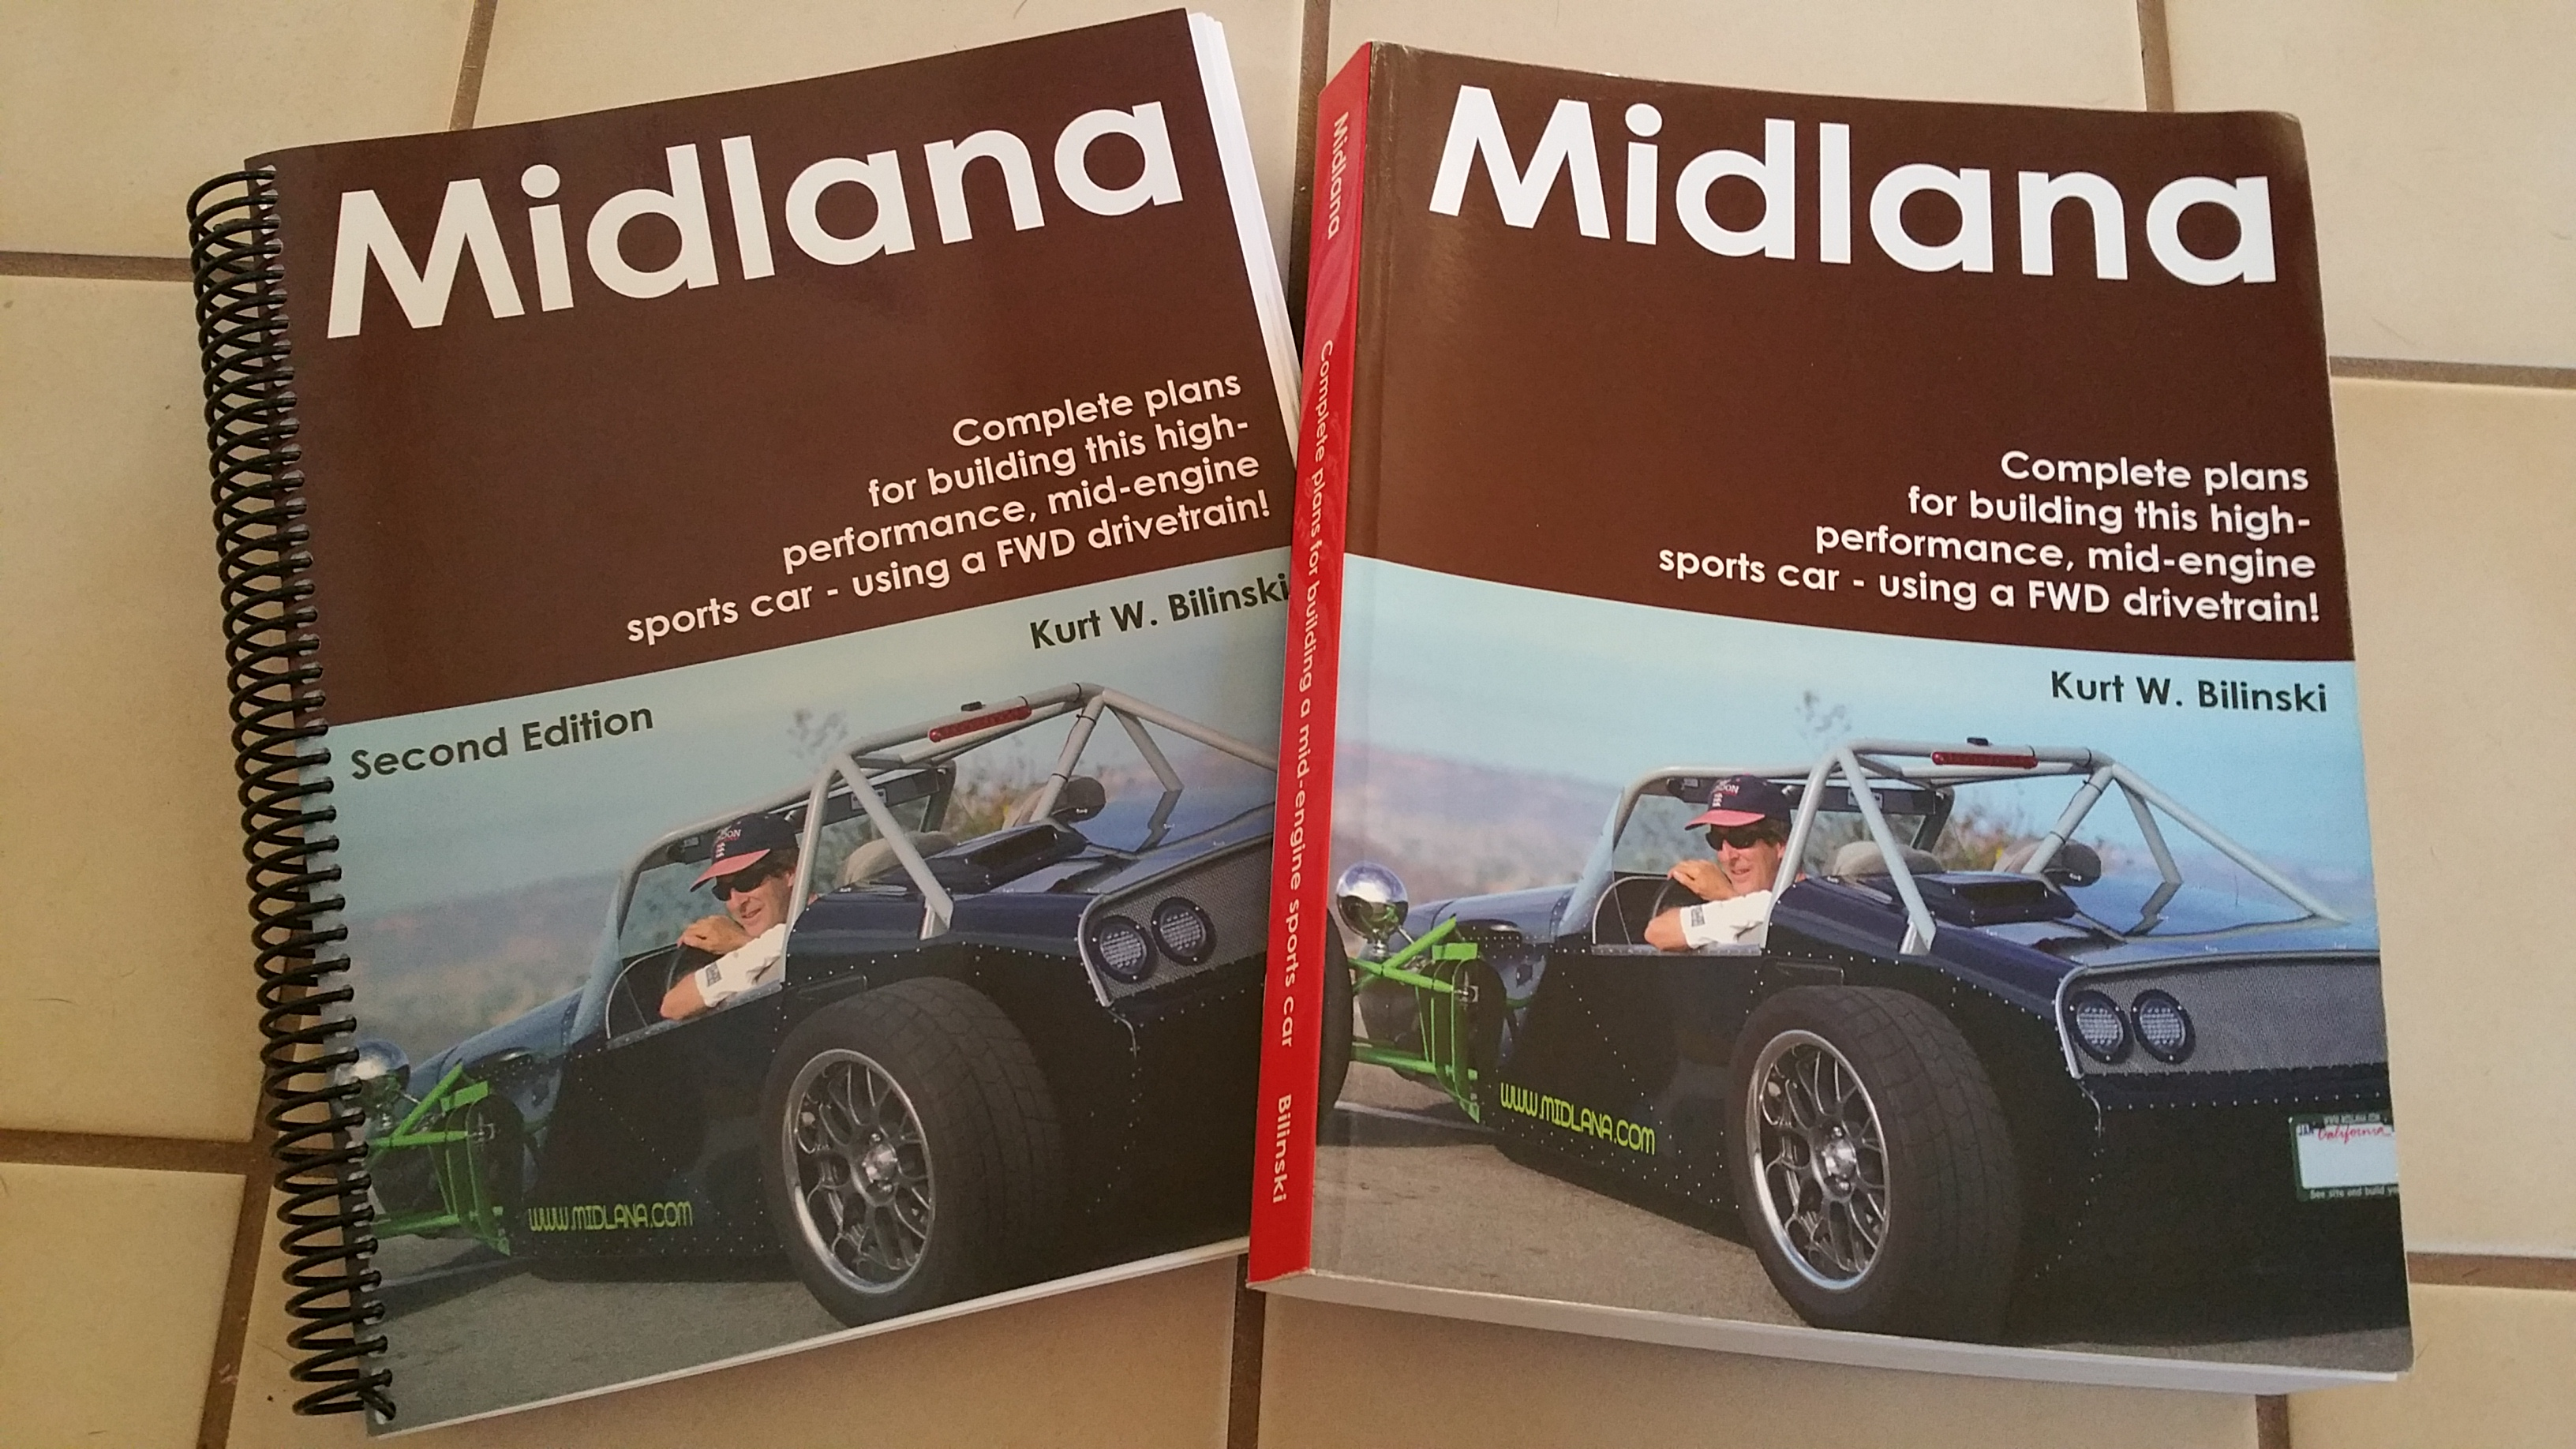 Midlana – Build a mid-engine Seven using a FWD drivetrain